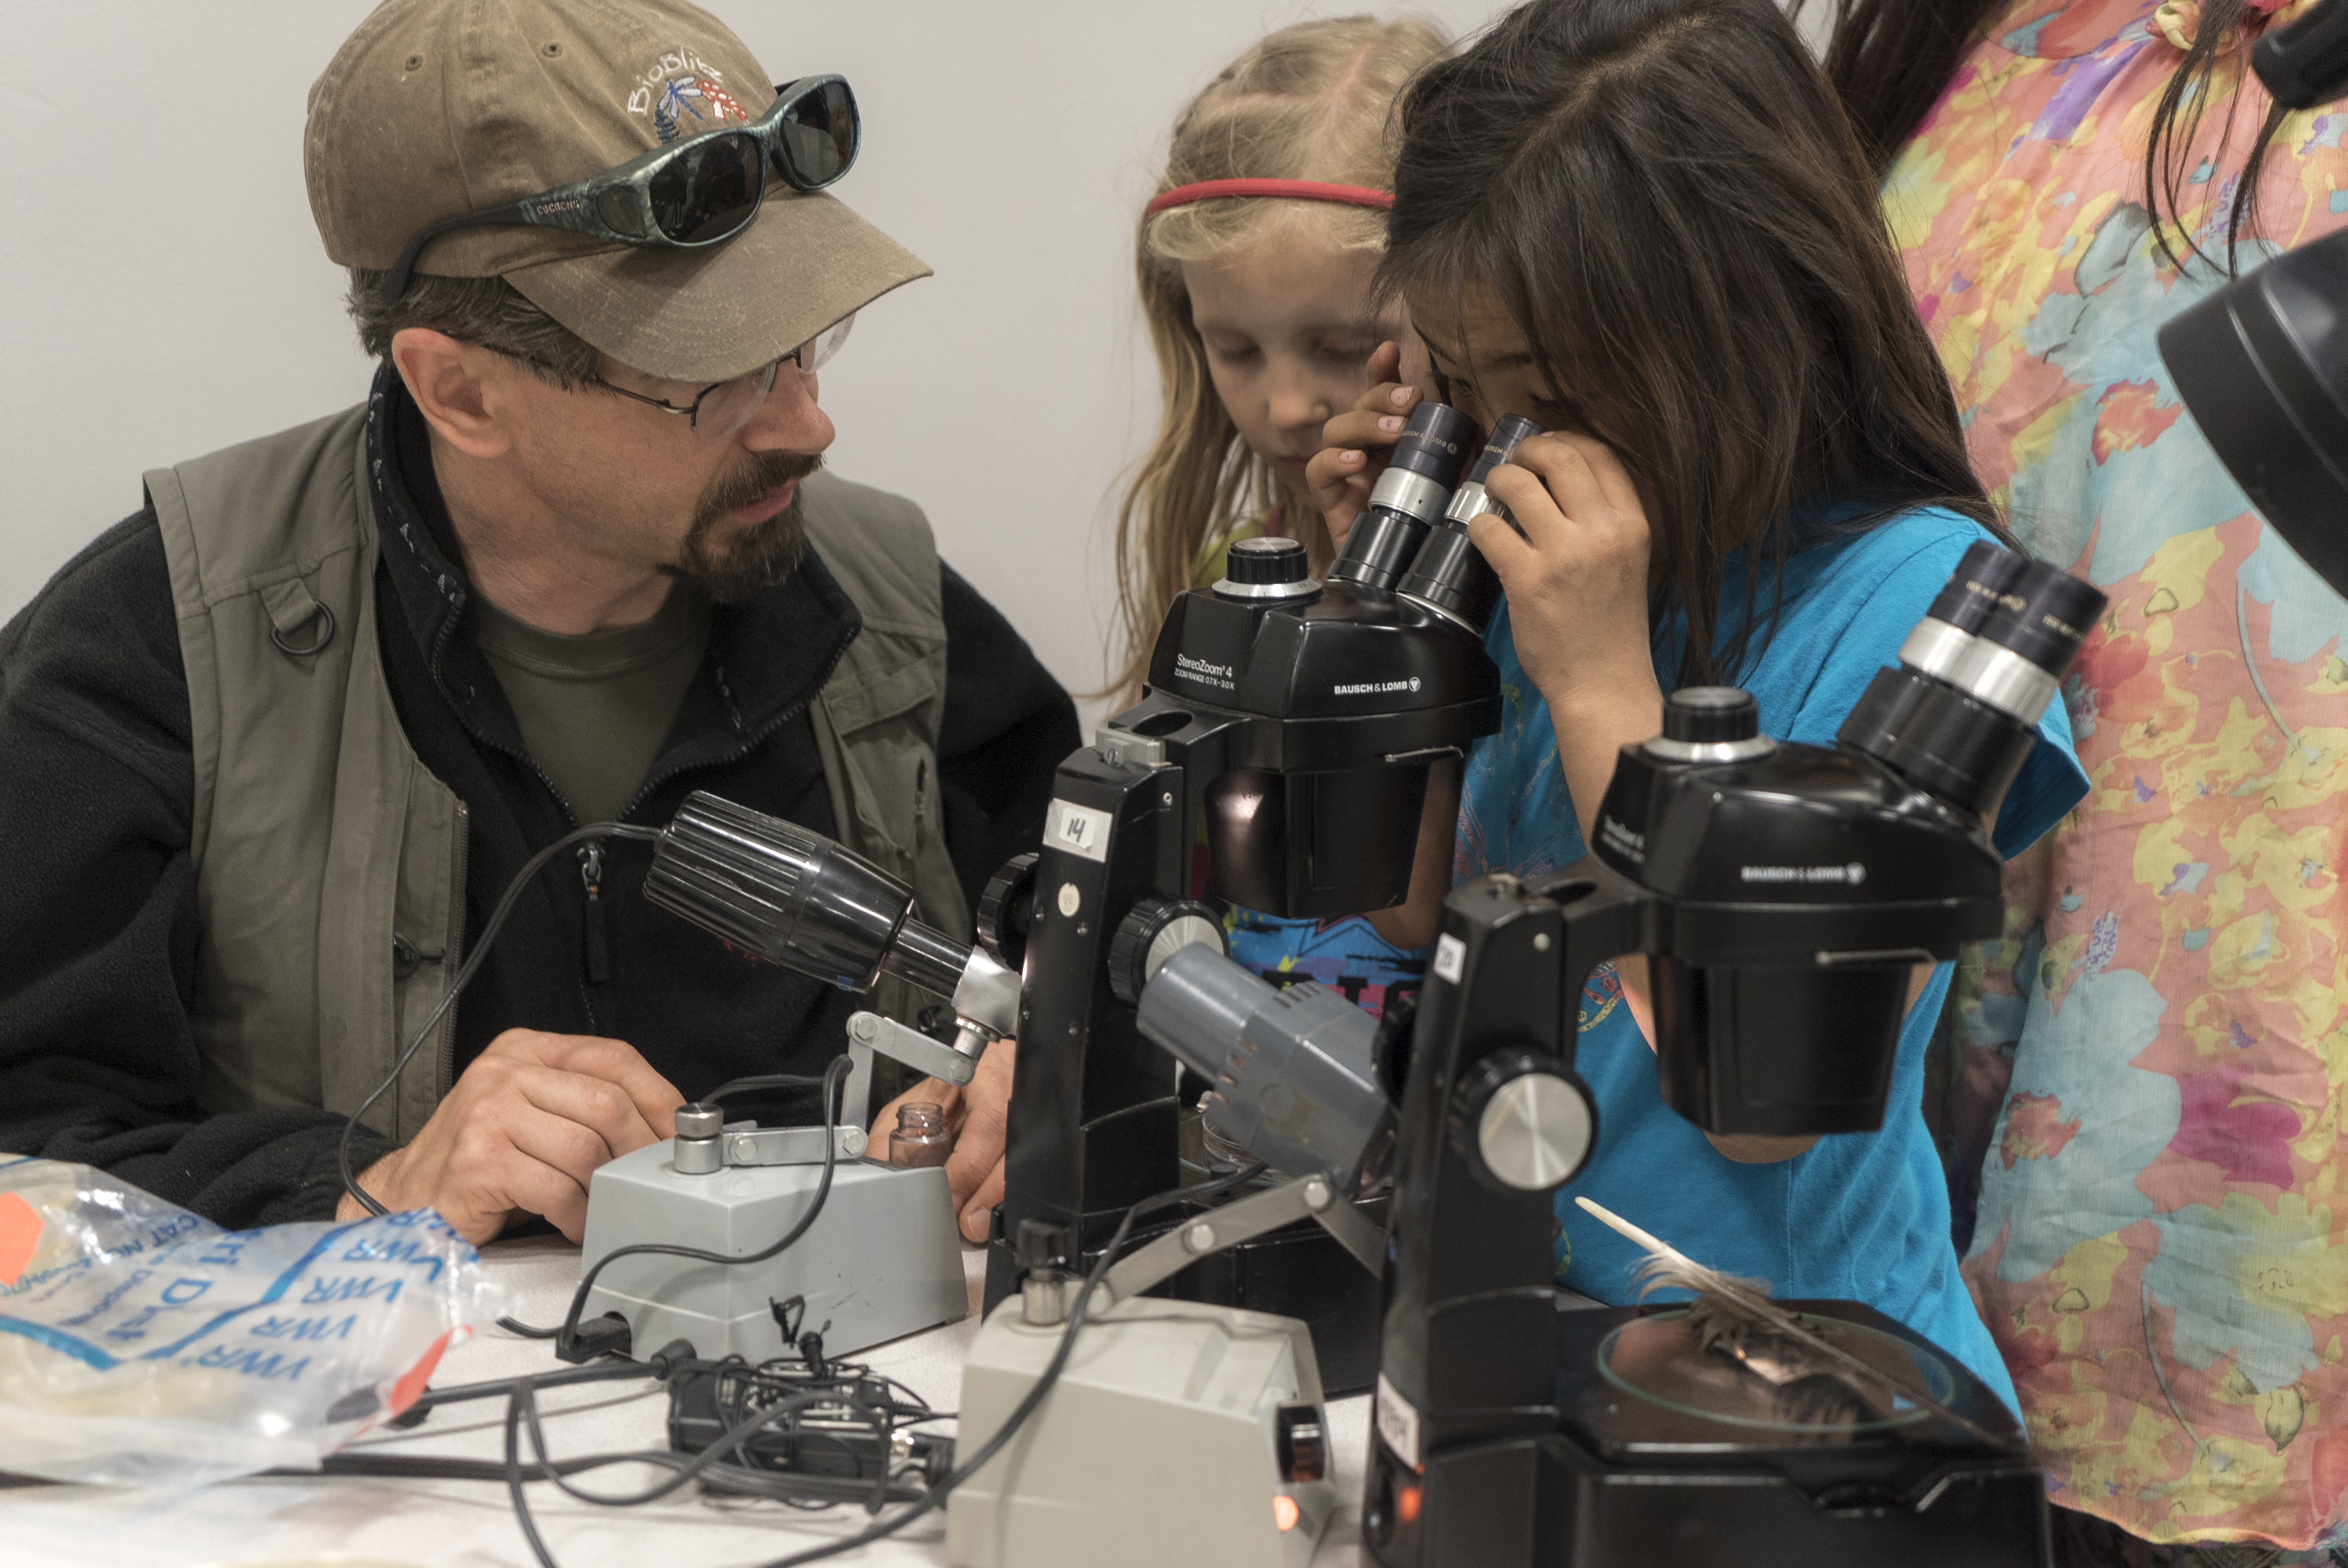 Seven-year-old Anna Nukapigak looks through a microscope at samples. (Photo courtesy of the National Park Service)